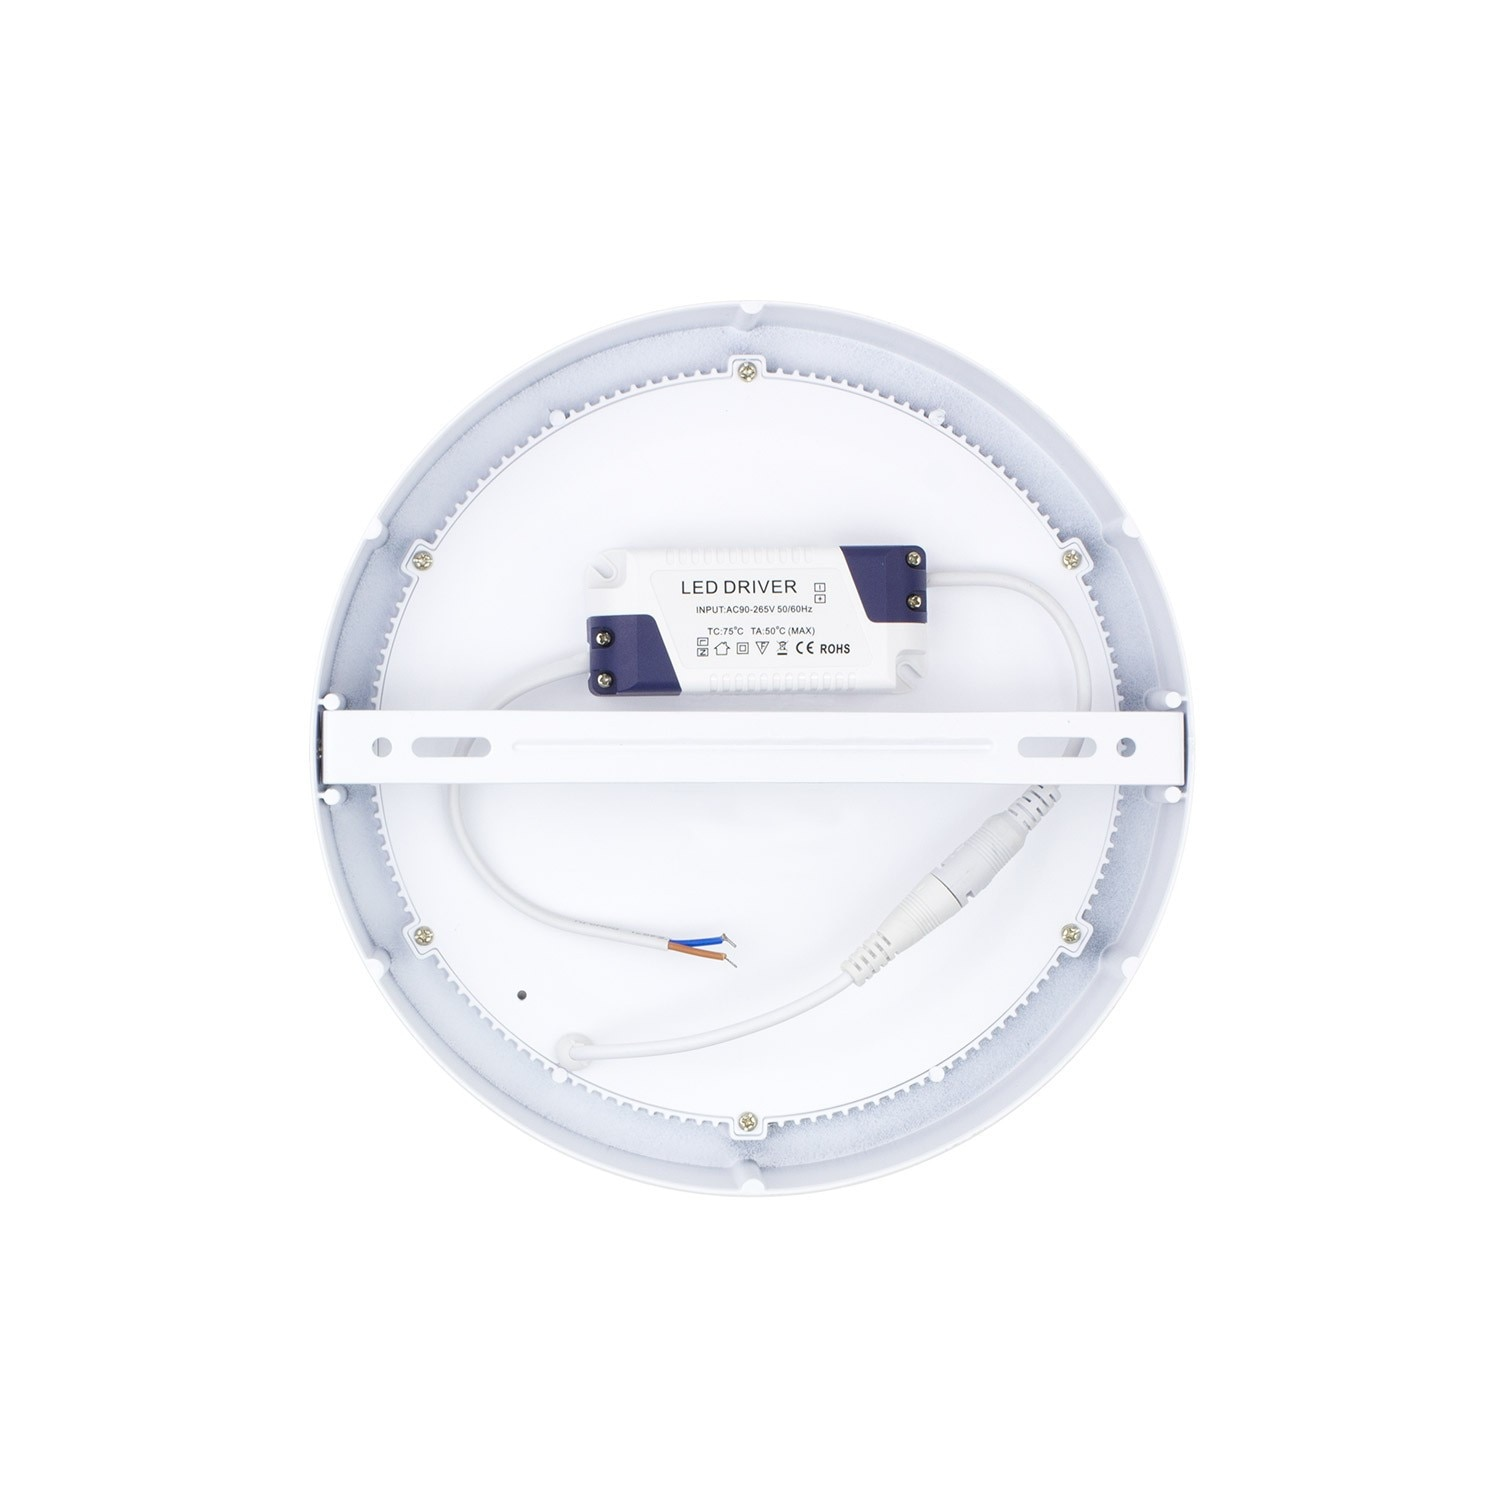 Pack-Plafones-LED-Circular-18W-2-un-Downlight-LED-Plafones-de miniatura 8